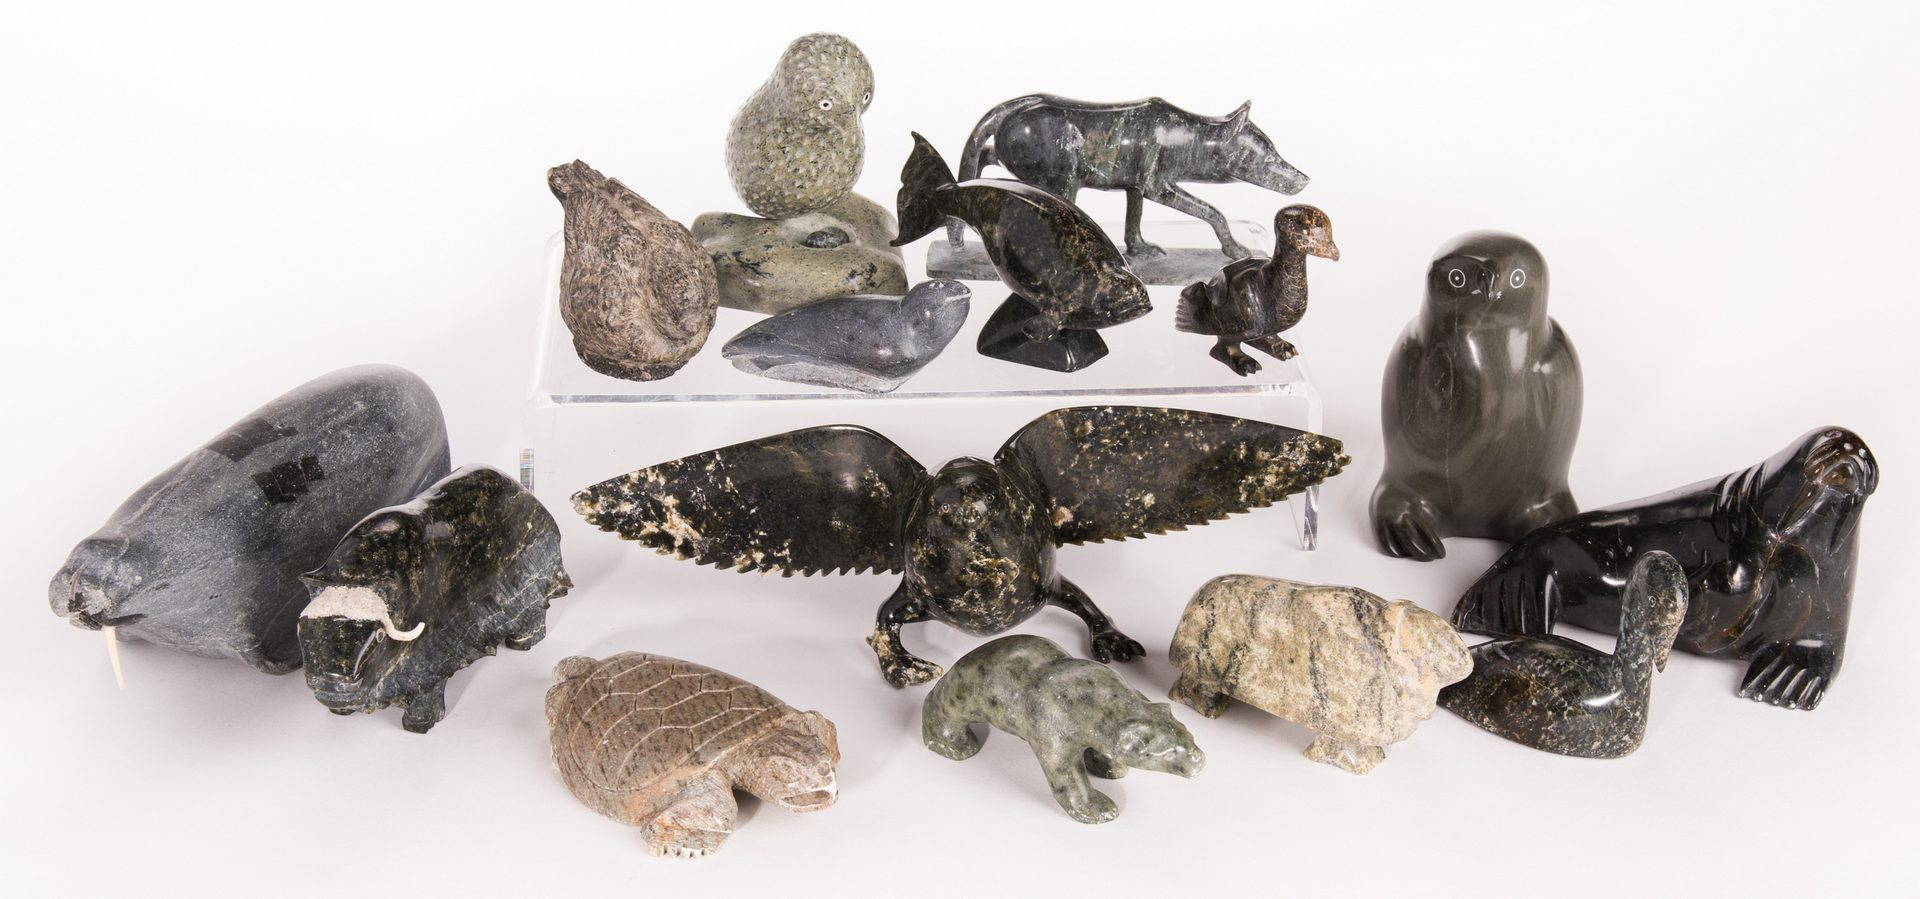 Lot 96: 15 Inuit Stone Carvings, inc. Pootoogook, General, Utye